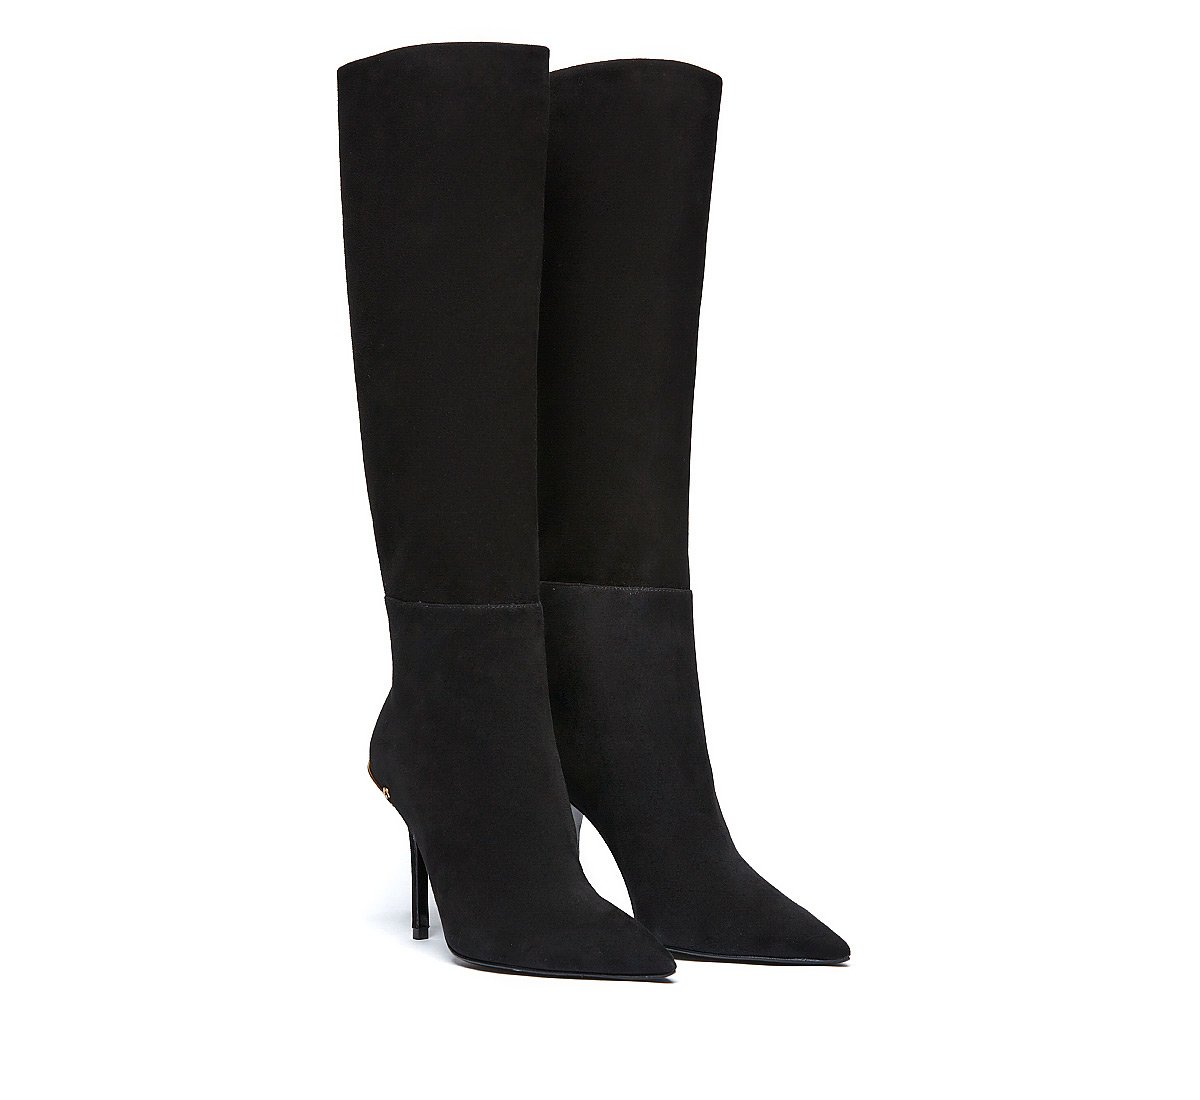 Boots in soft calf leather